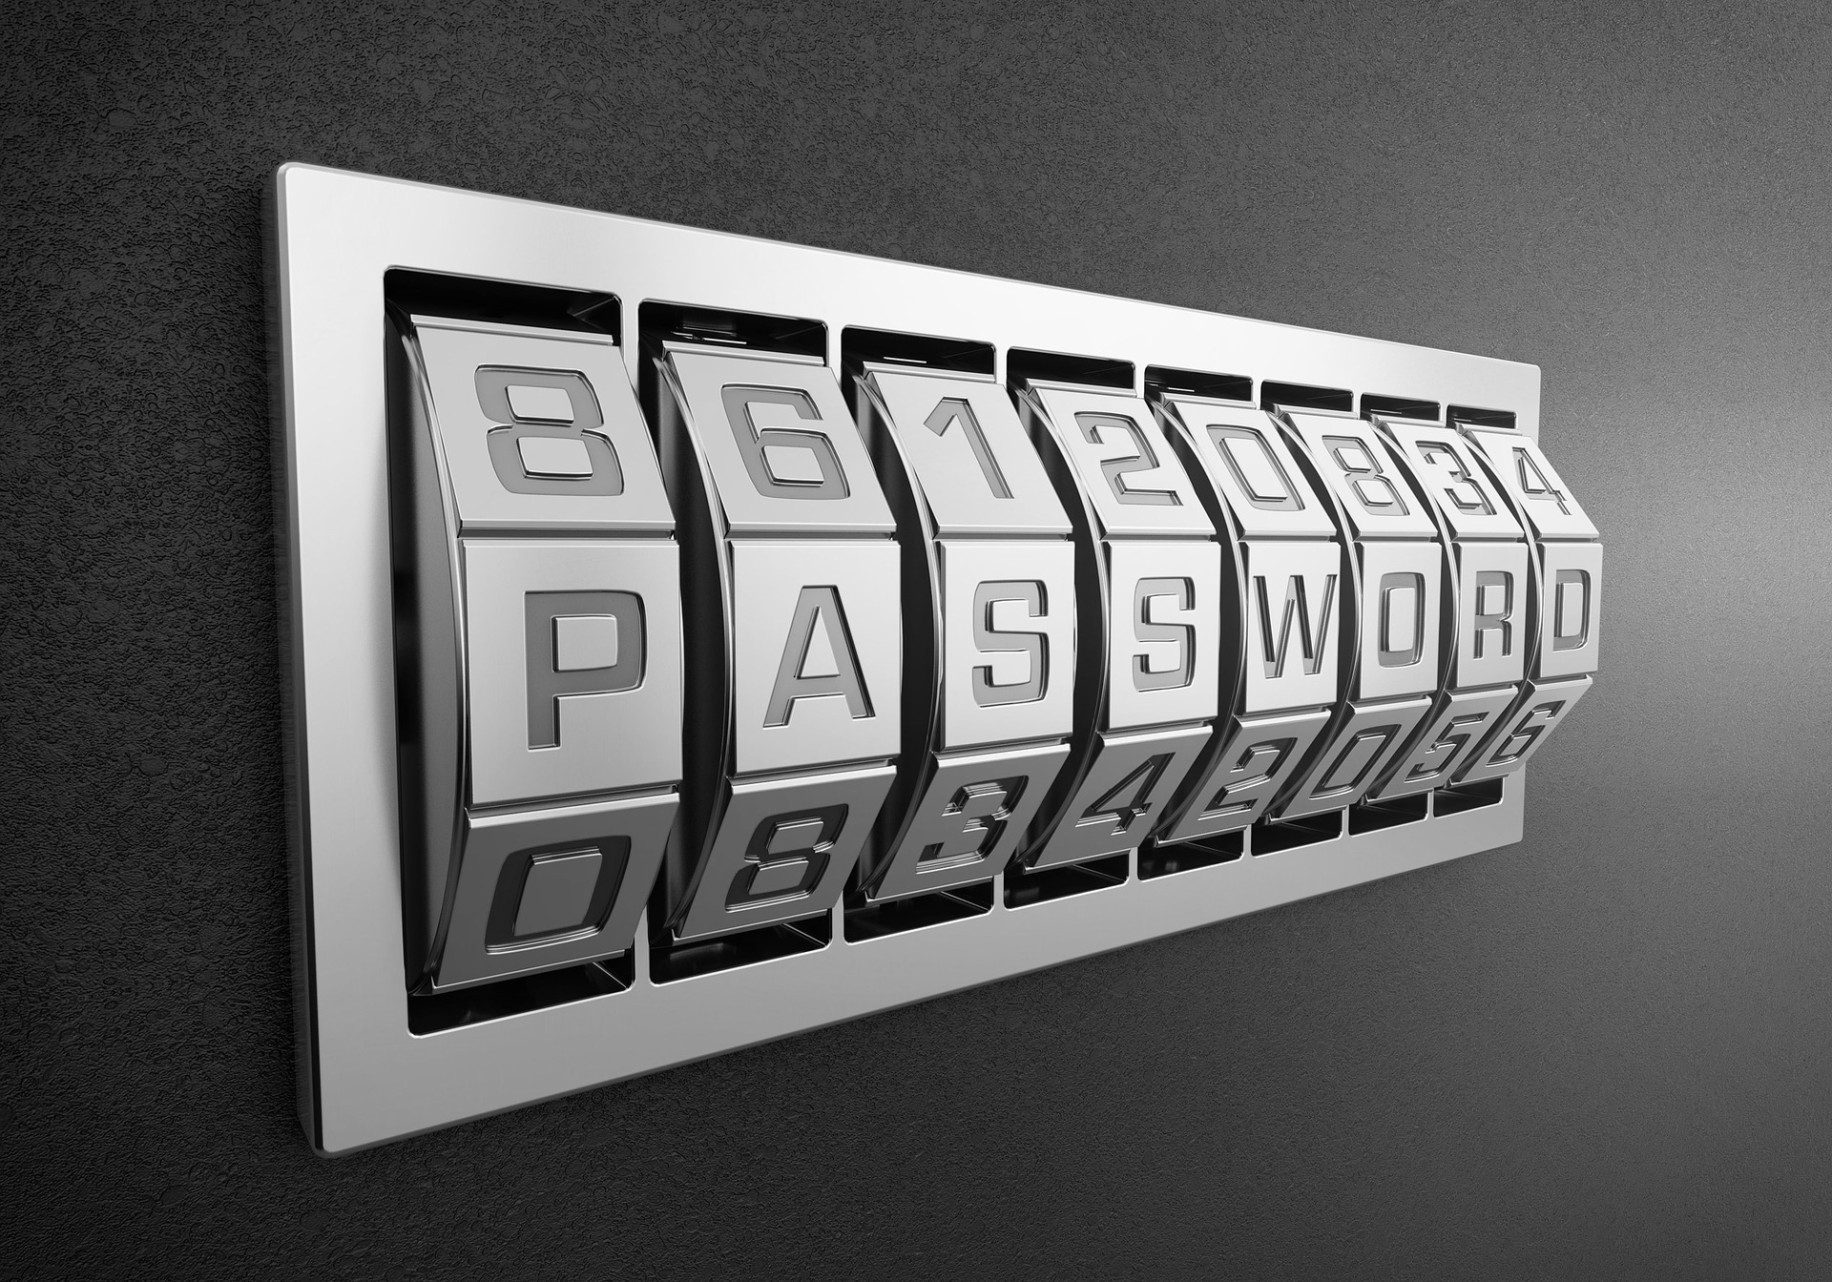 Use Strong Passwords & Encryption Codes